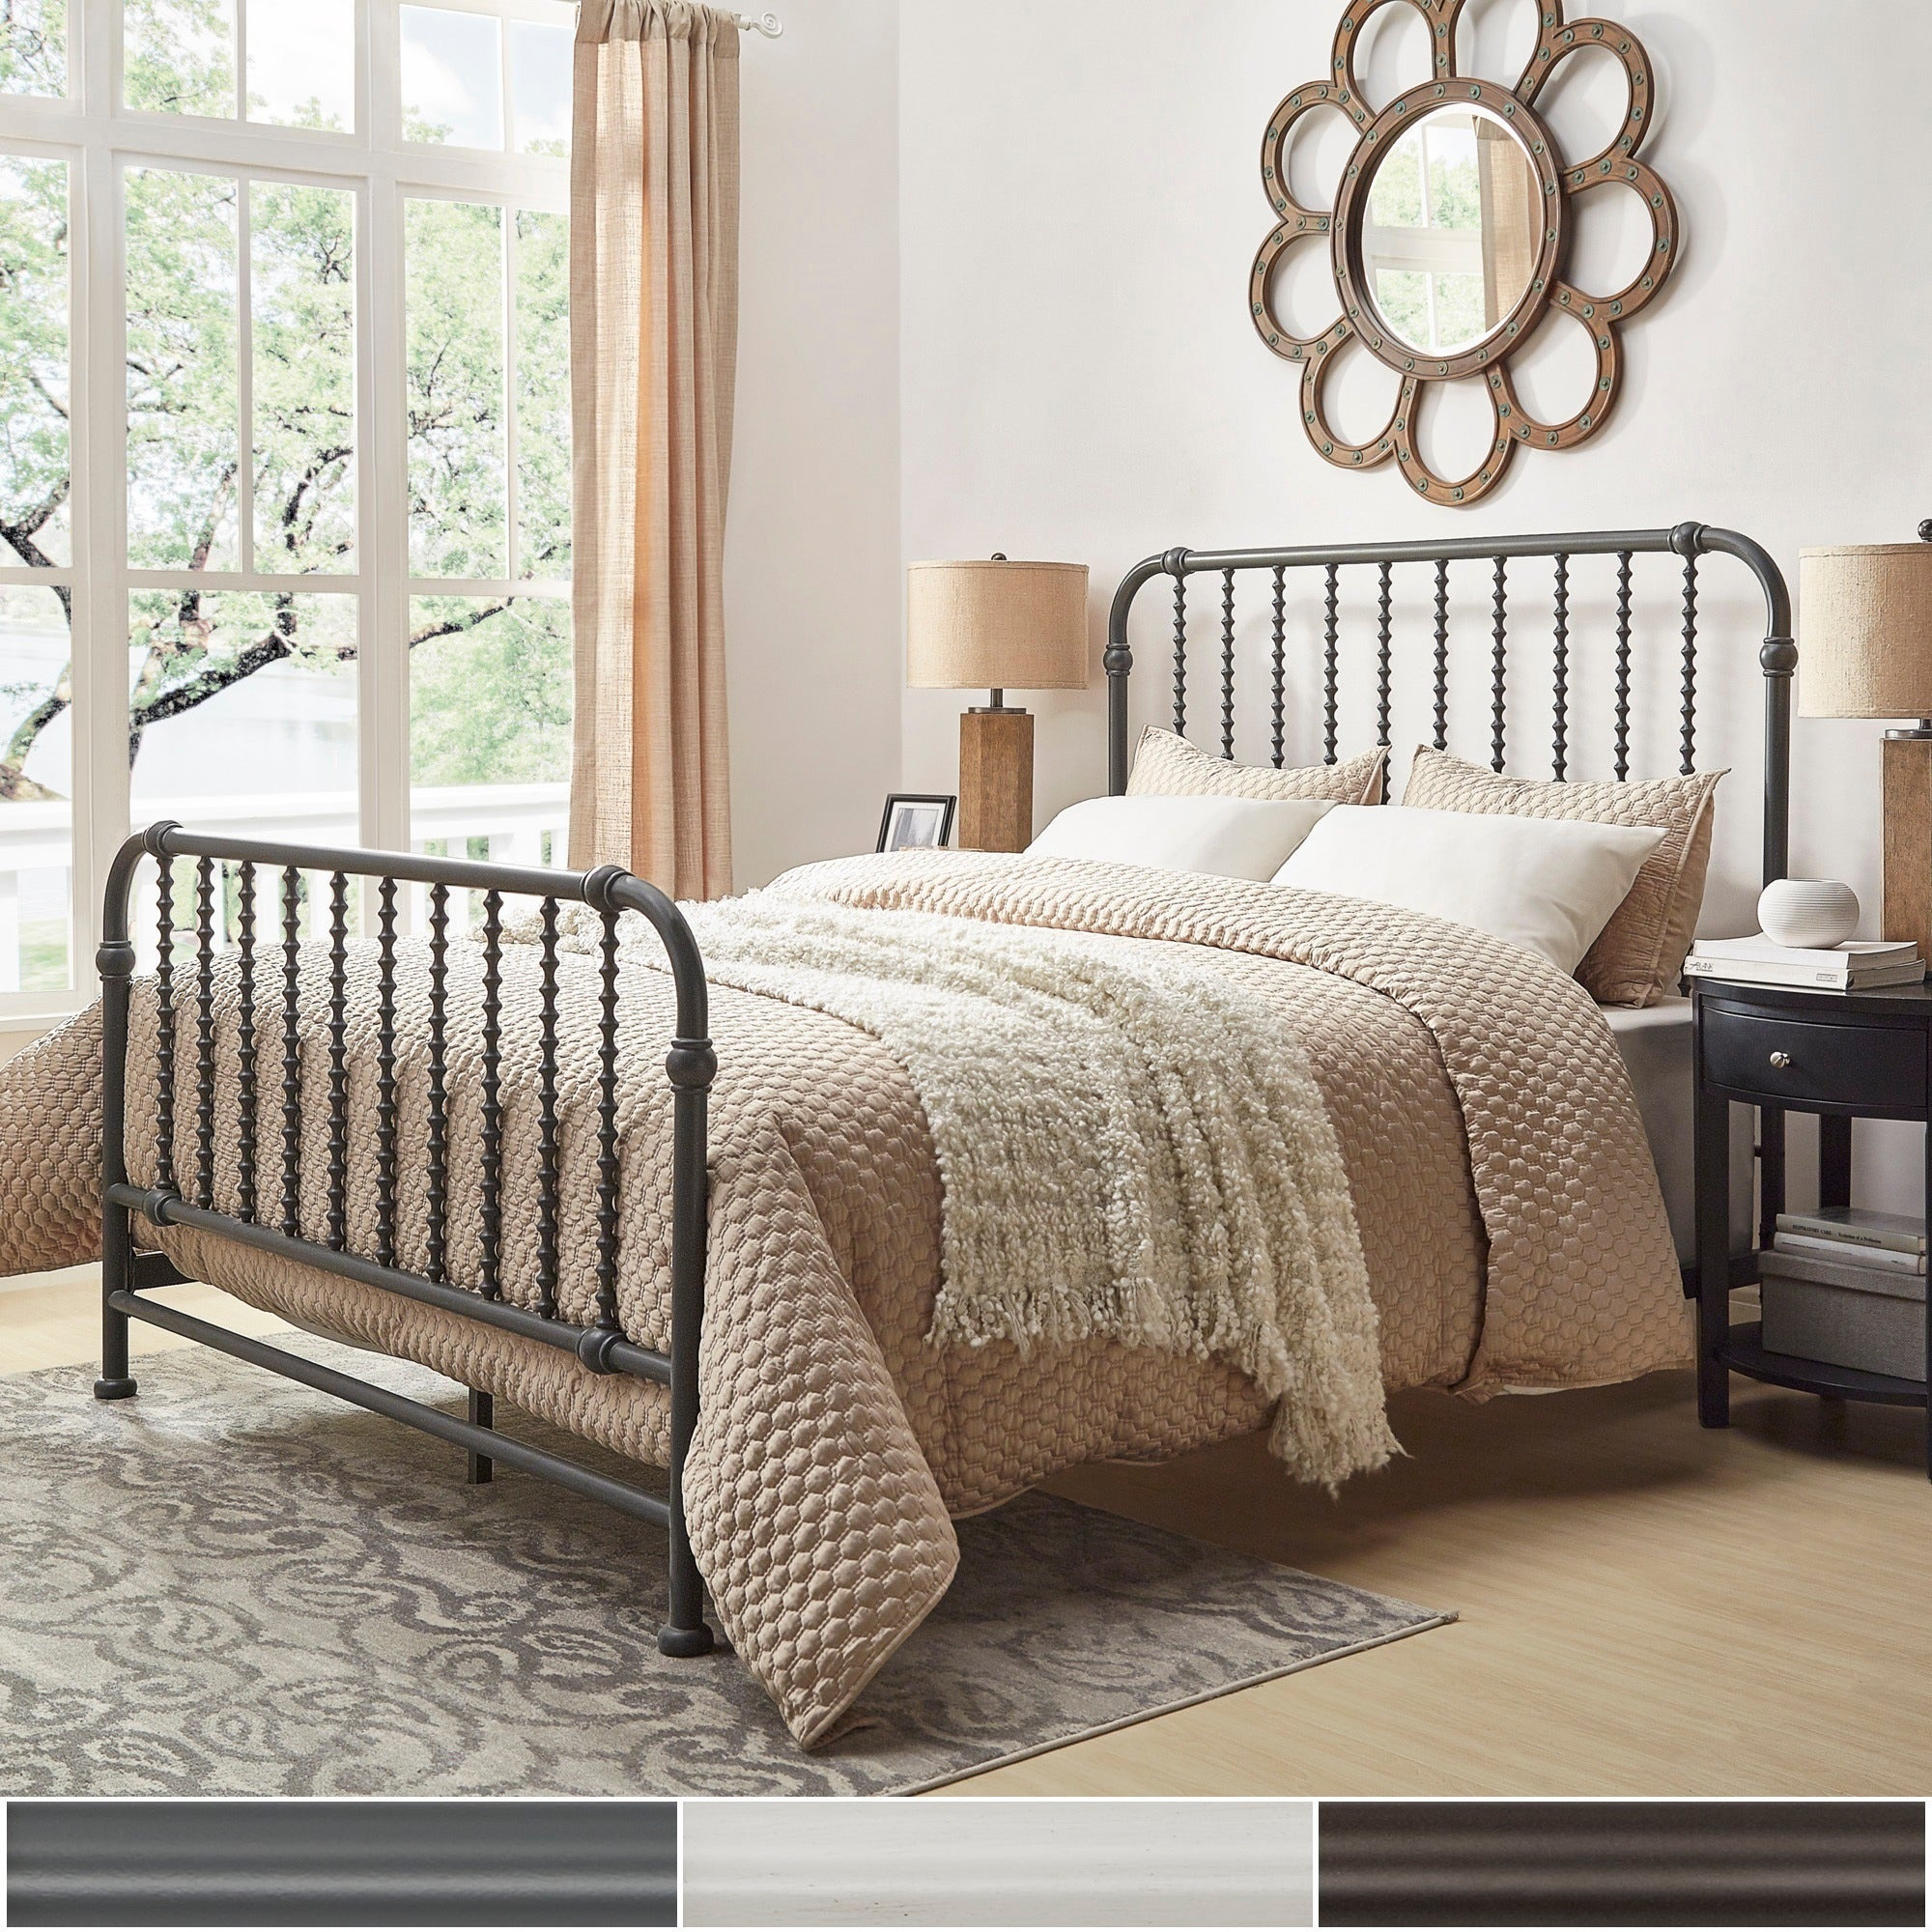 Shop Gulliver Vintage Antique Spiral Full Iron Metal Bed By Inspire Q Bold Overstock 12447384